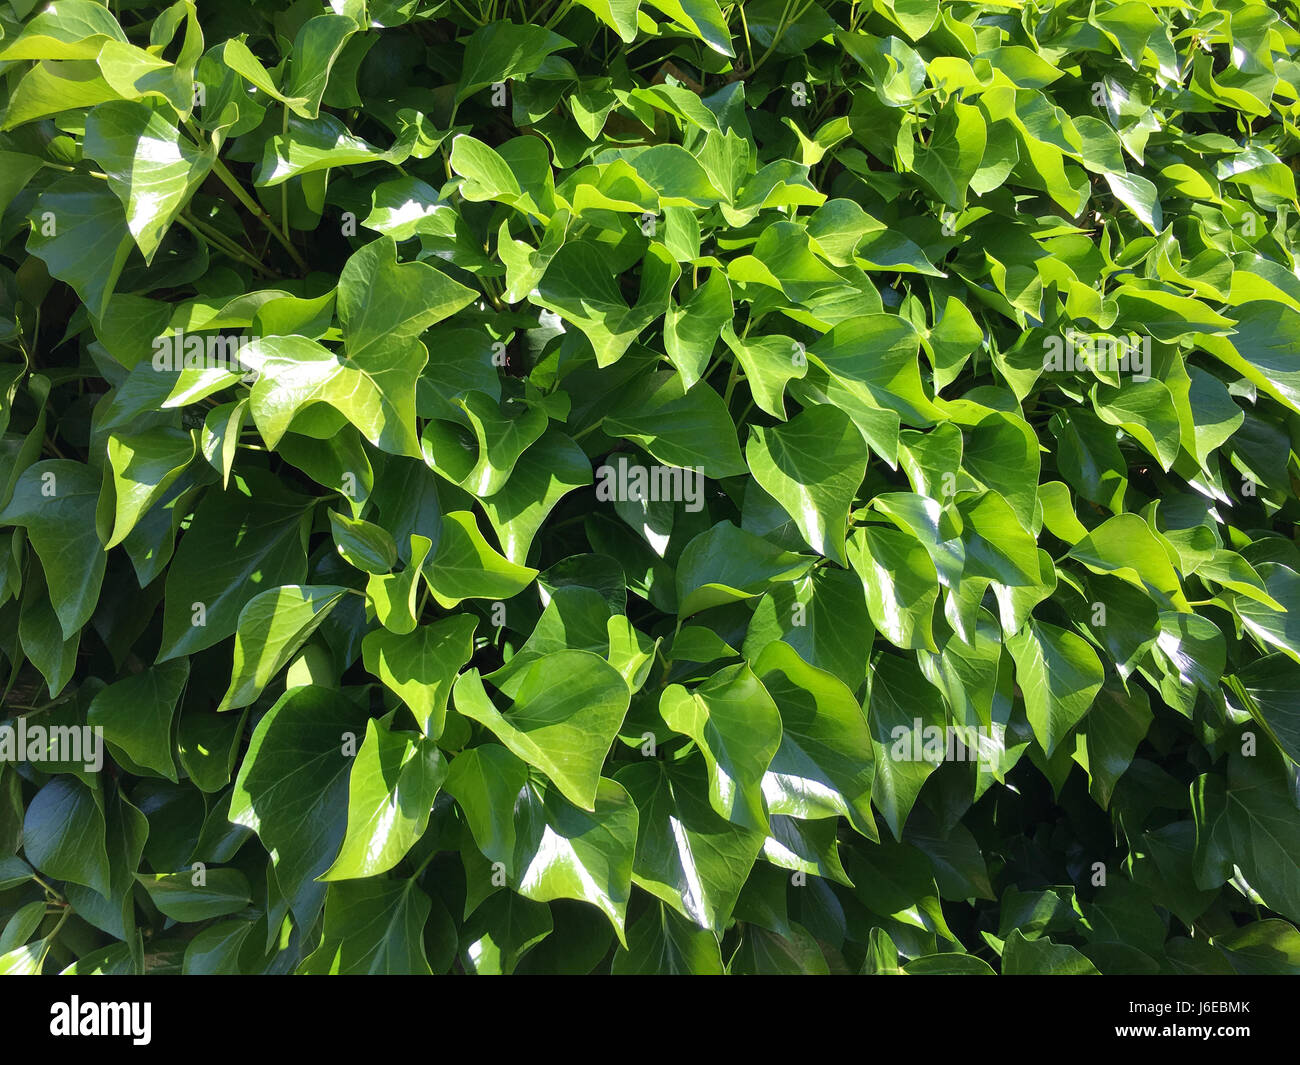 Hedera Hibernica Stock Photos & Hedera Hibernica Stock